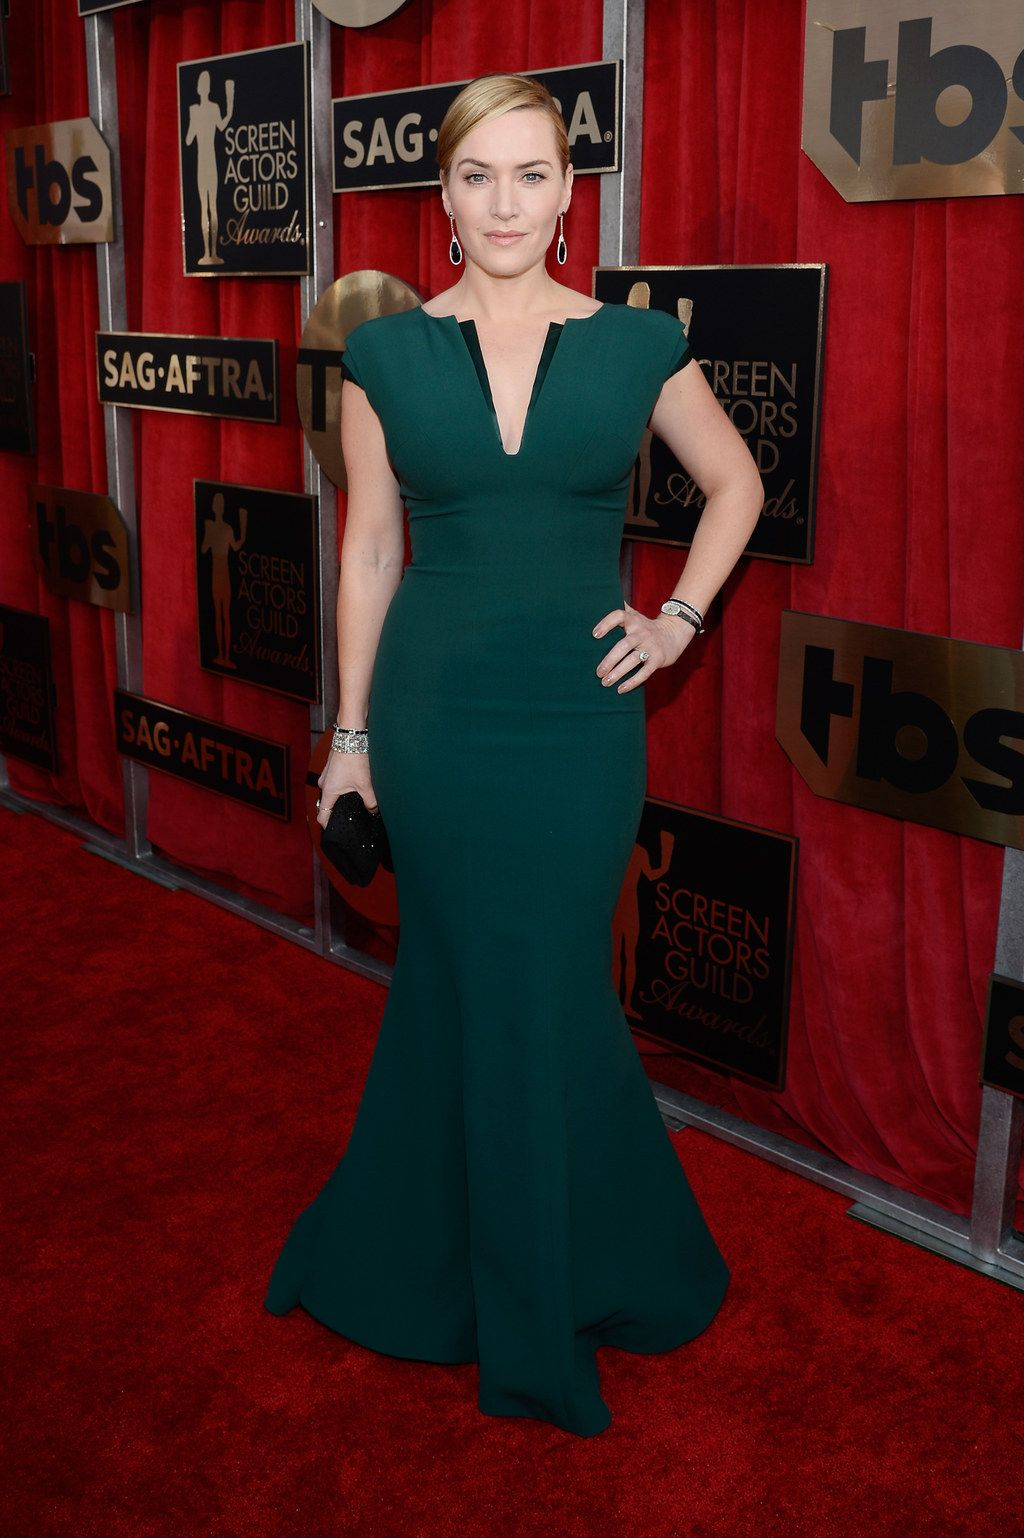 All the looks on the sag awards red carpet sag awards red carpet